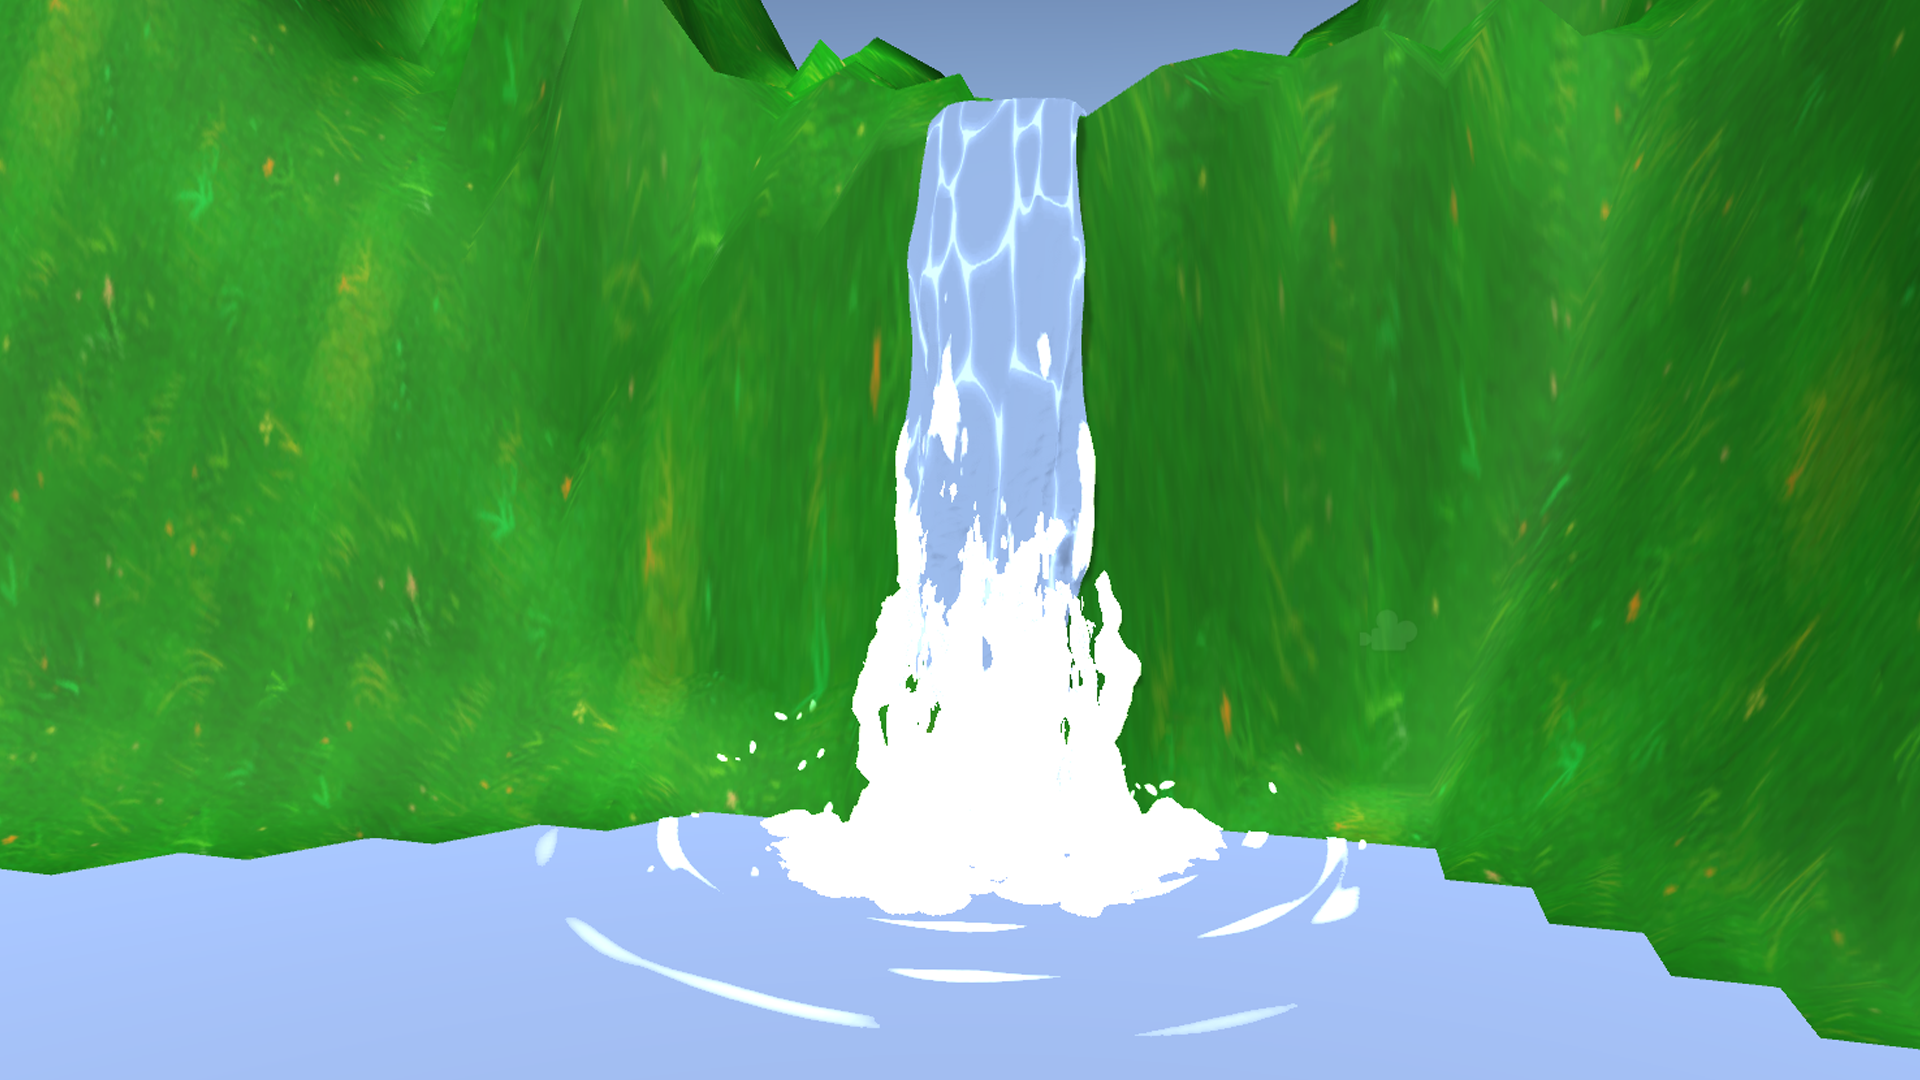 Guide how to create cartoon waterfall in Unity using Shader Forge